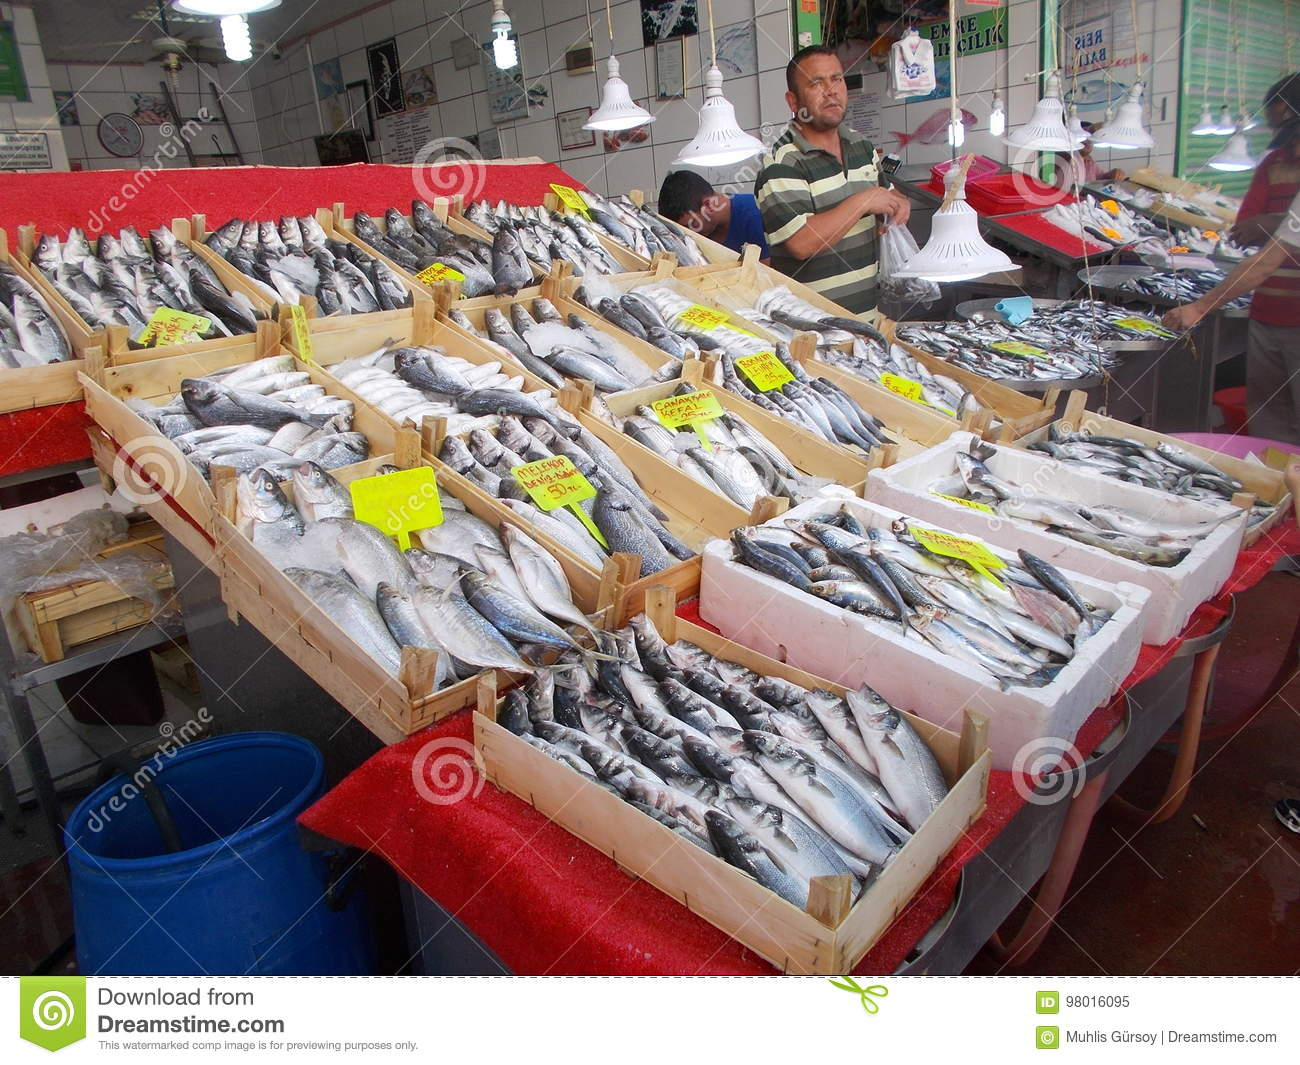 Fisher Selling Fishes on Fish Market